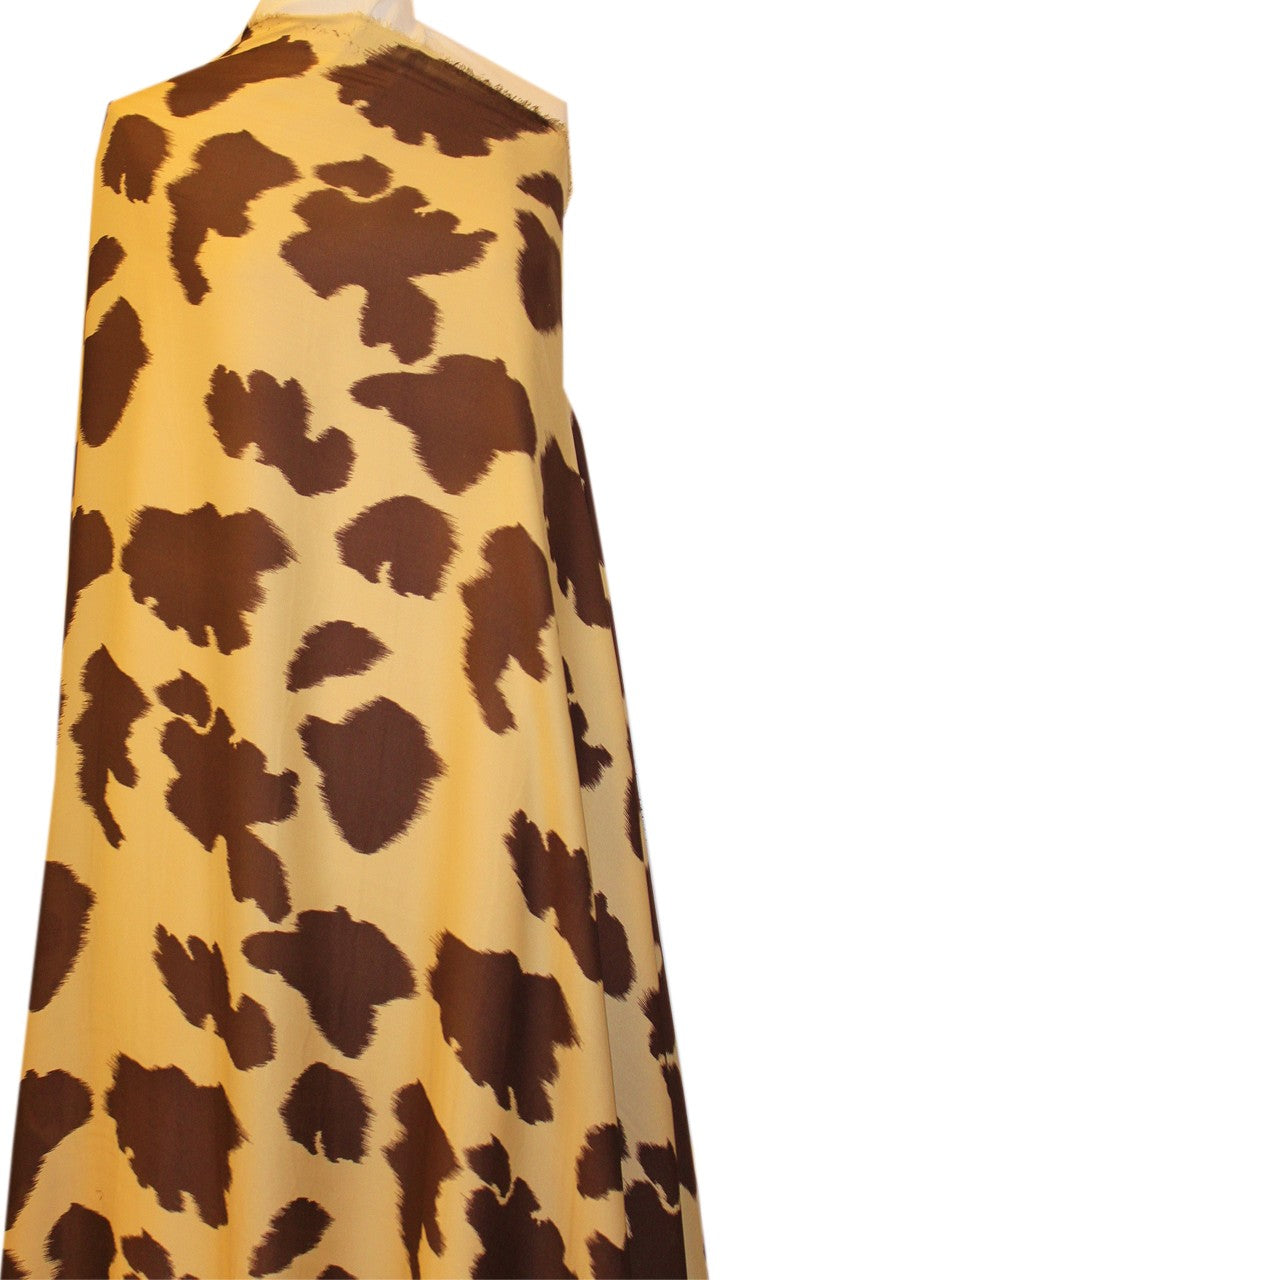 Cow Spotted Silk Printed Georgette - Brown/Tan - Fabrics & Fabrics NY